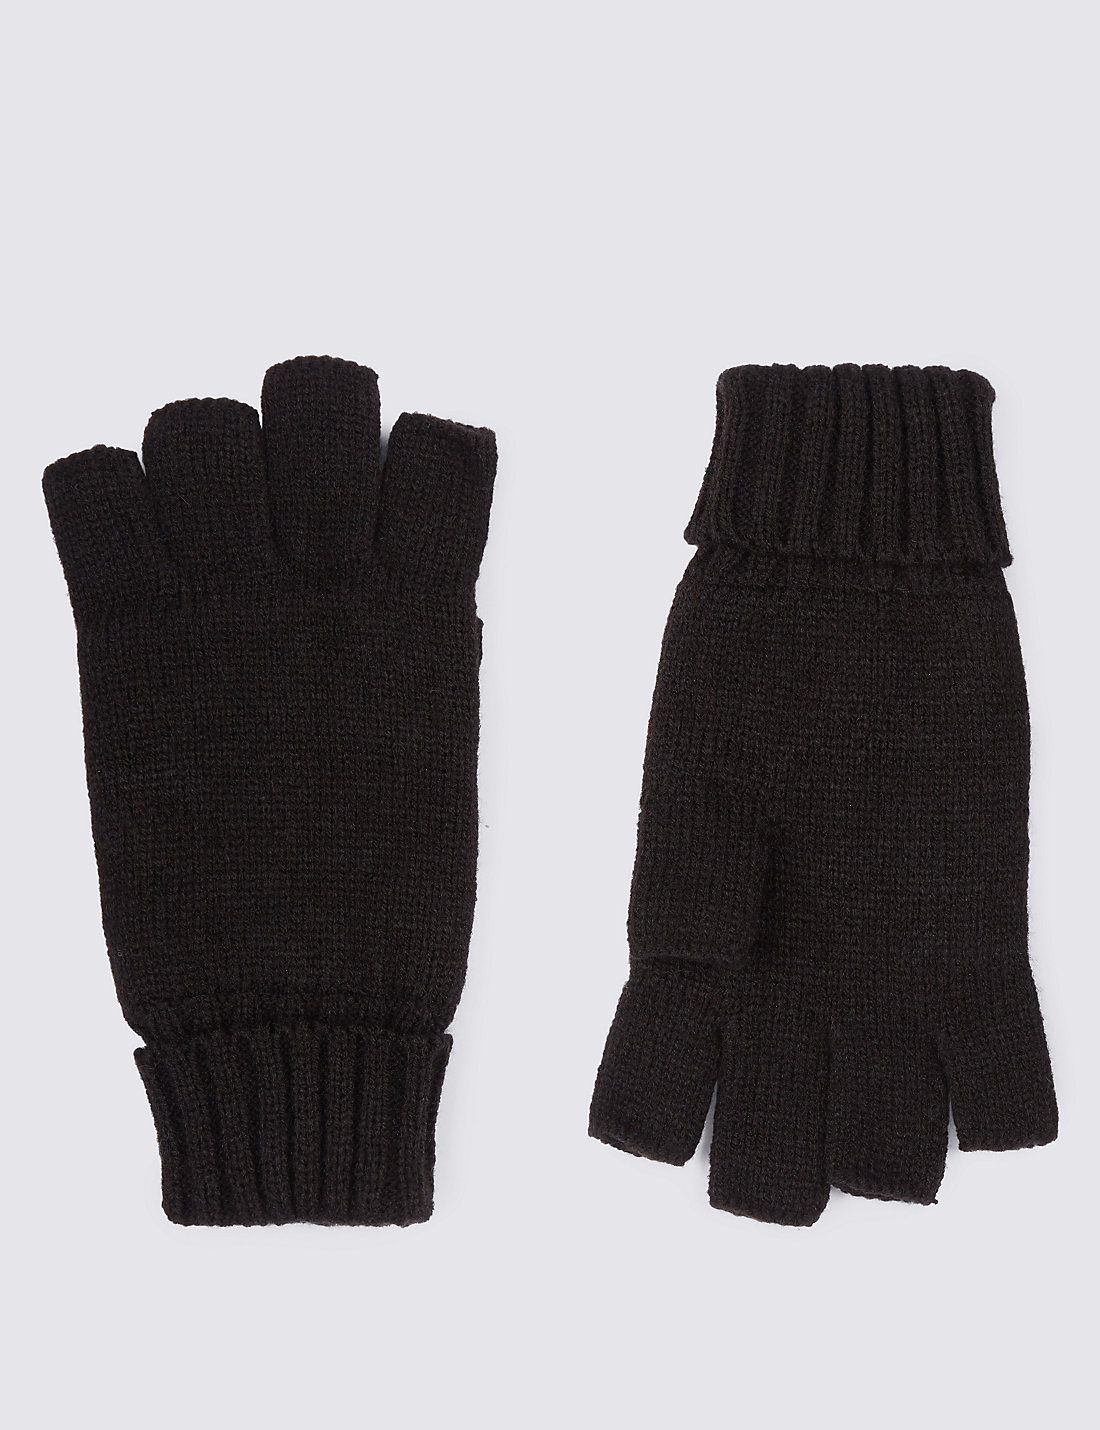 Fingerless gloves canada - Knitted Fingerless Gloves